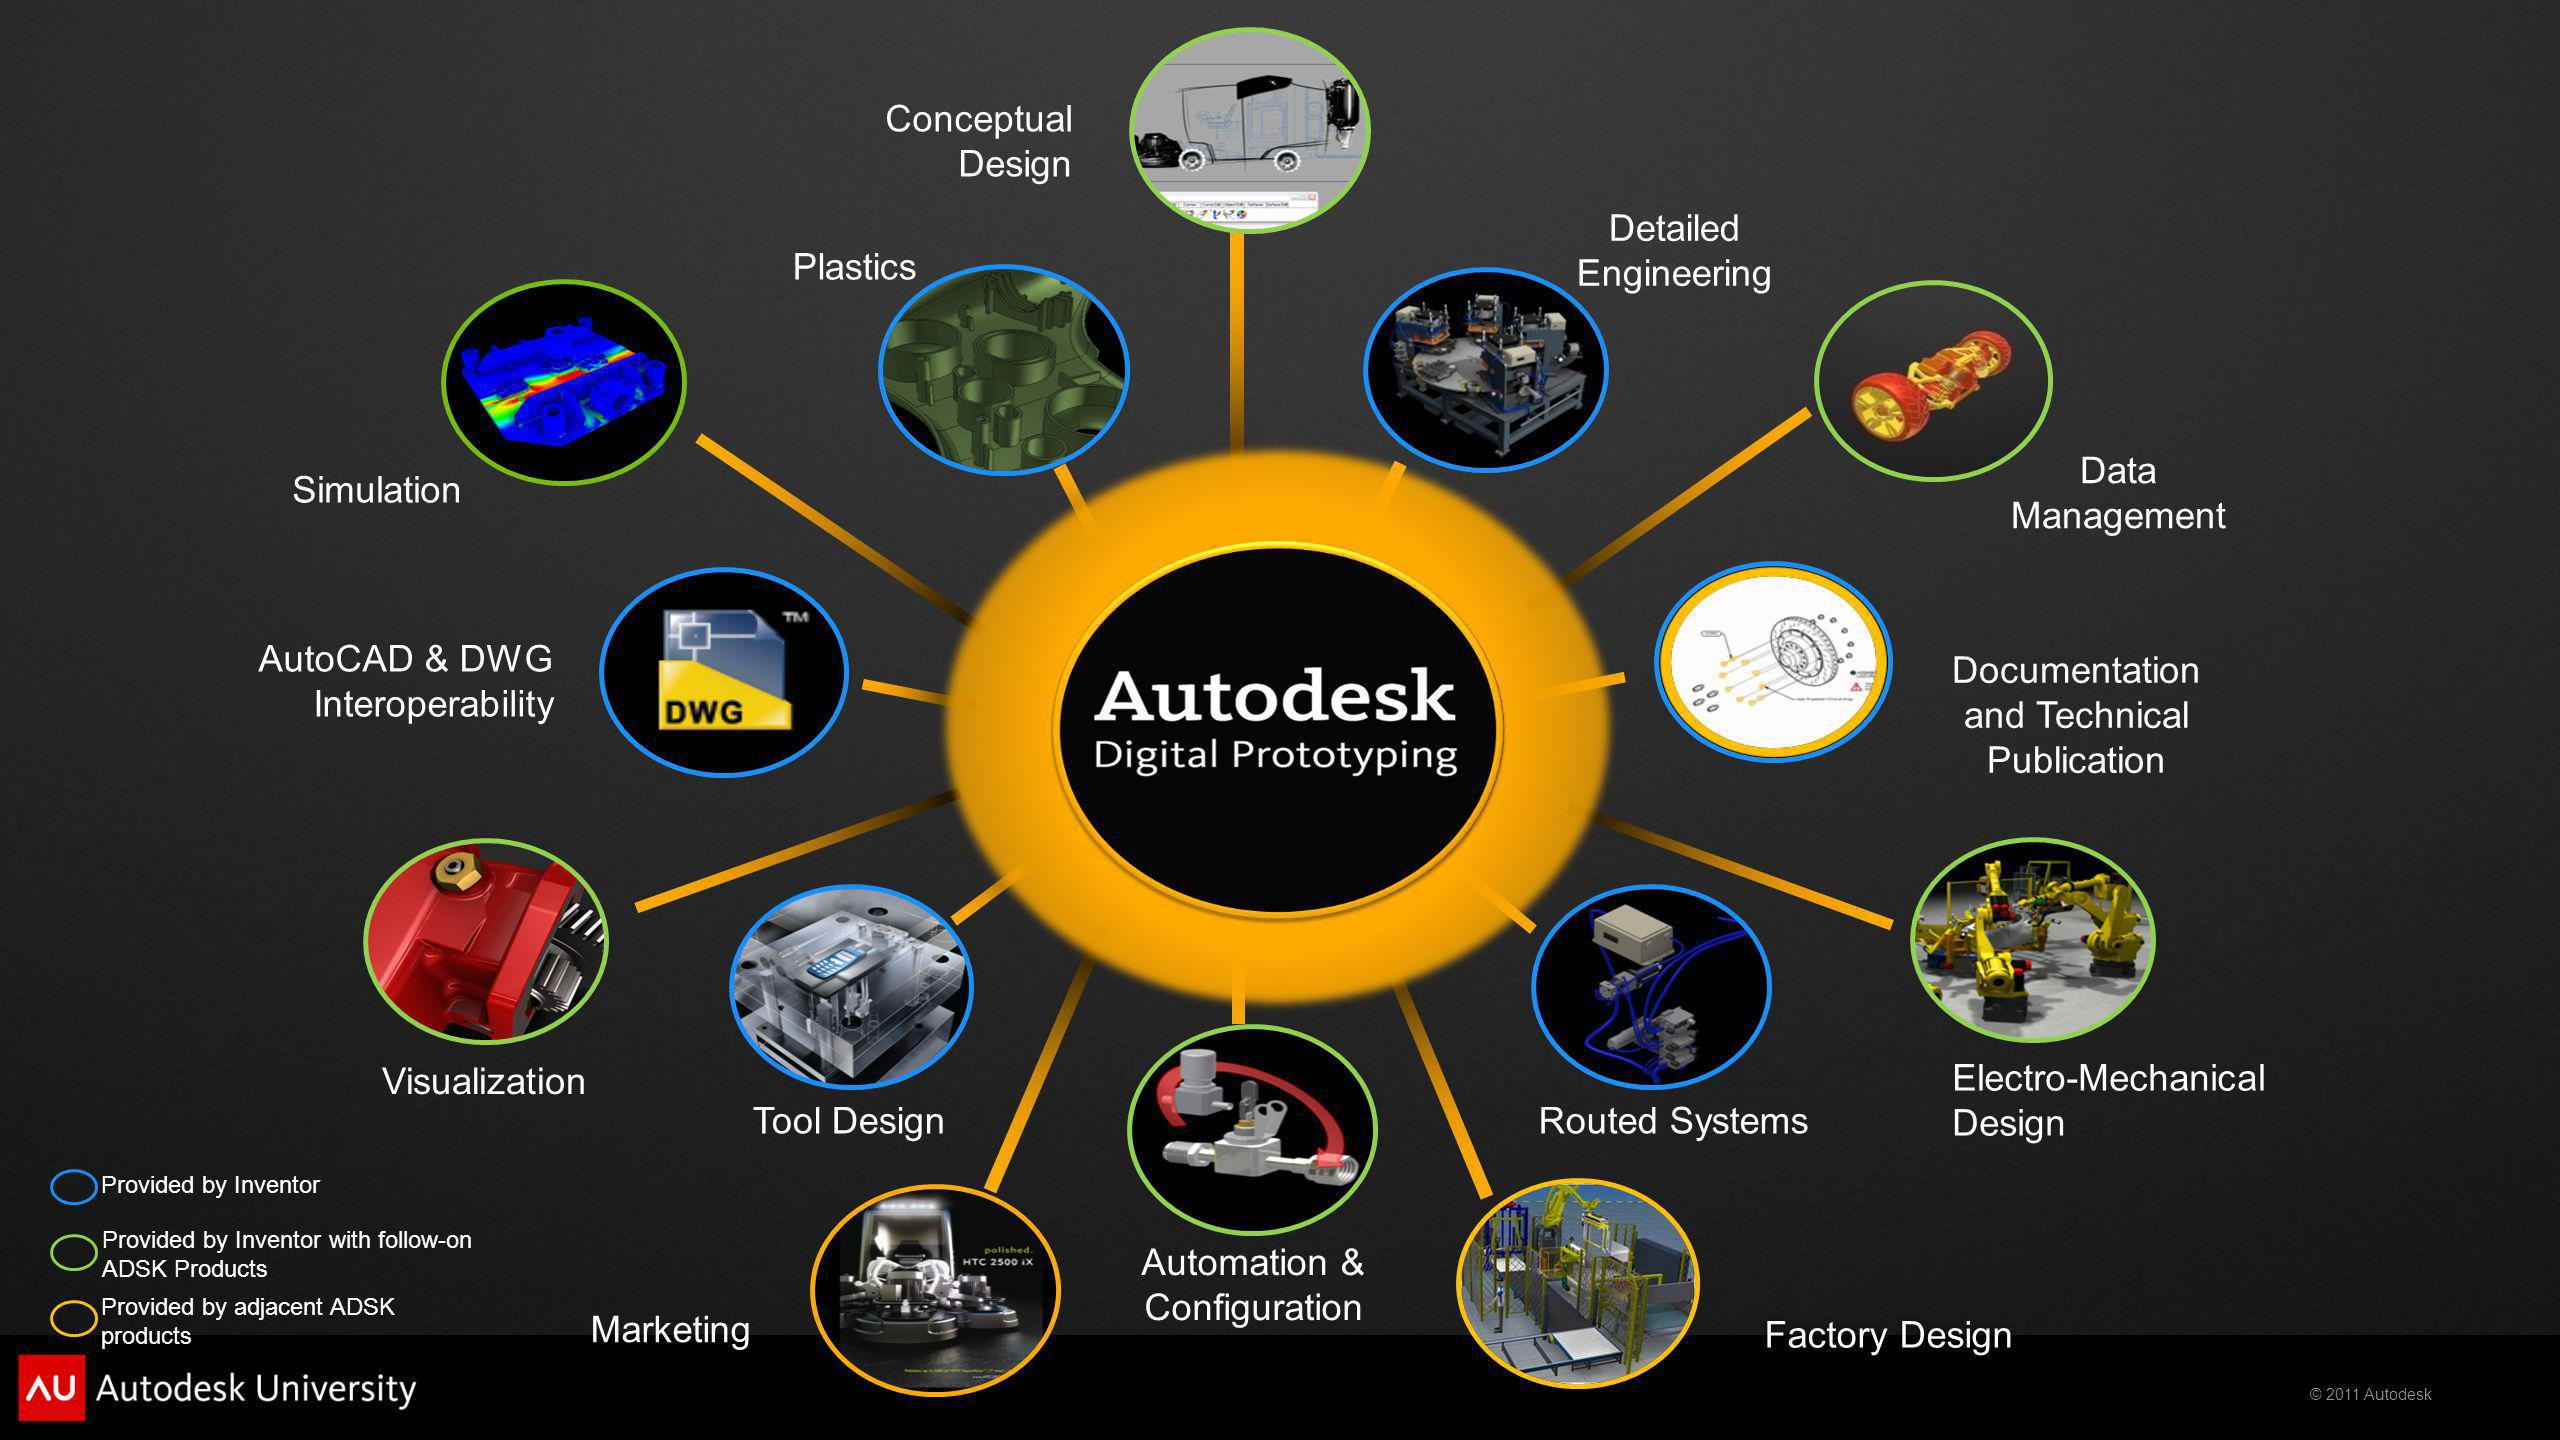 © 2011 Autodesk Detailed Engineering Plastics Visualization Marketing Data Management Documentation and Technical Publication Provided by Inventor Provided by Inventor with follow-on ADSK Products Provided by adjacent ADSK products Routed Systems Conceptual Design Simulation Electro-Mechanical Design Automation & Configuration Factory Design AutoCAD & DWG Interoperability Tool Design